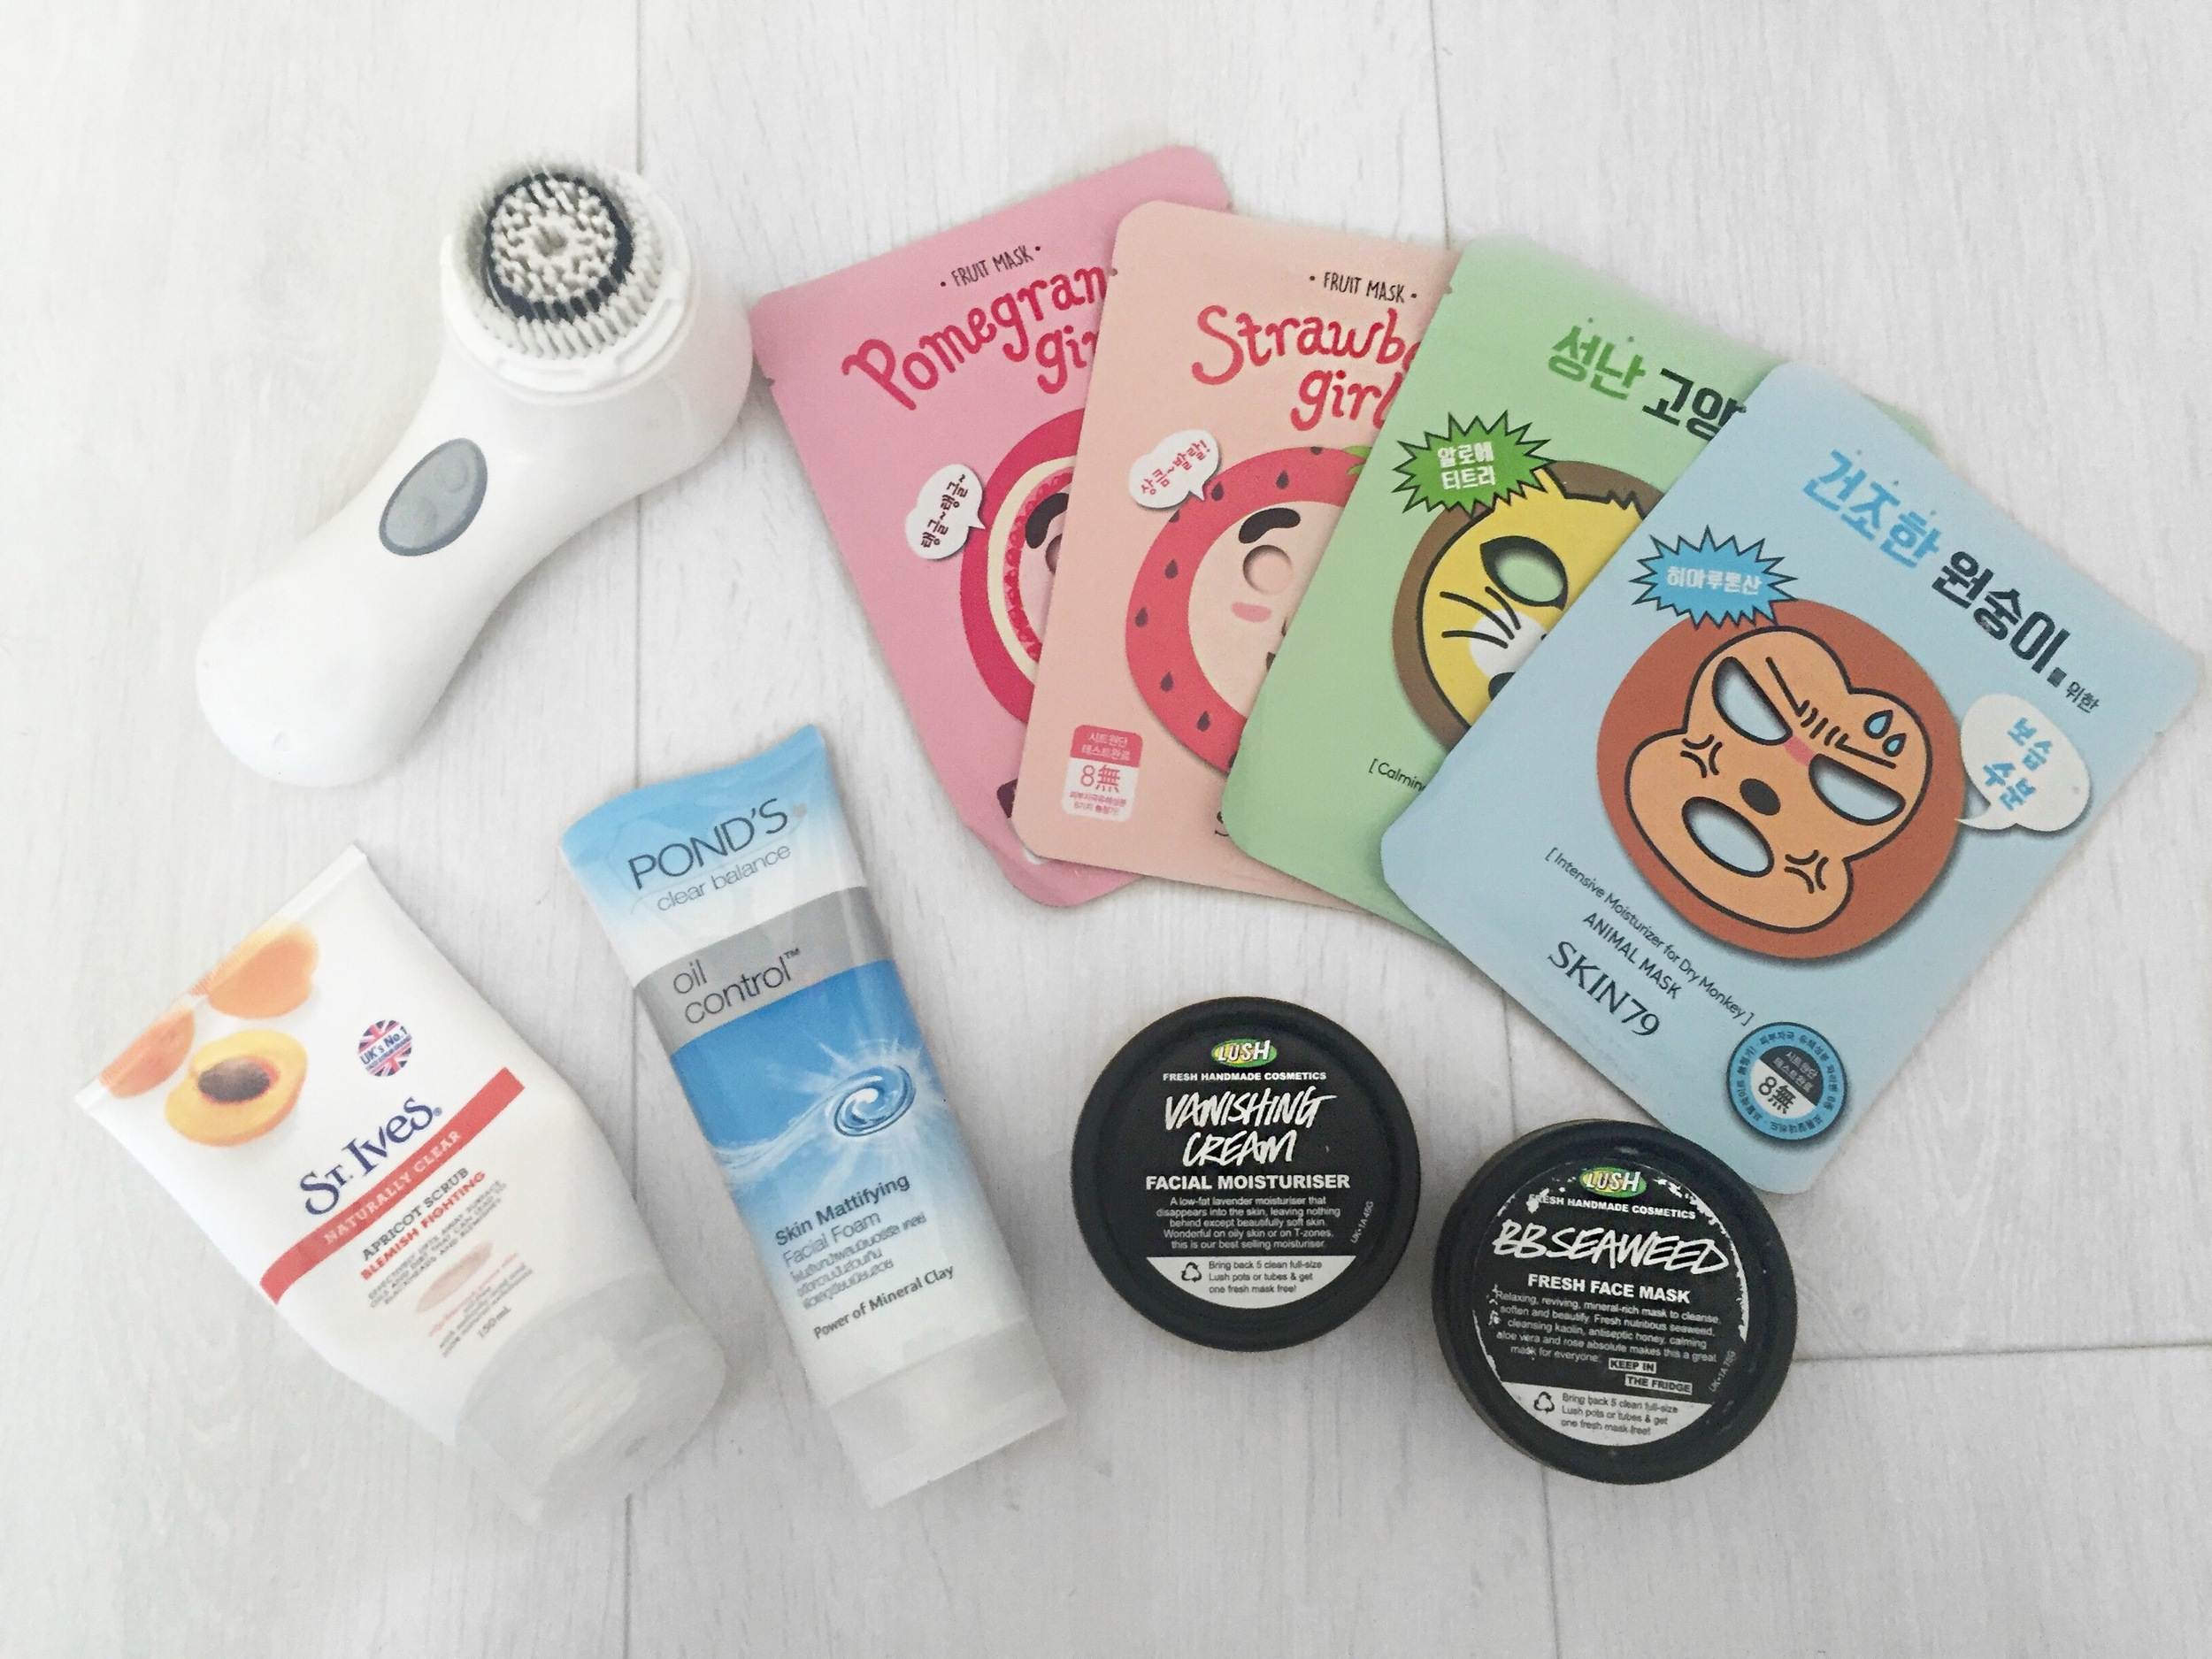 Clarisonic: Mia 2, St Ives Naturally Clear Apricot Scrub, Ponds Oil Control, Lush Vanishing Cream and Lush BB Seaweed Mask, Assortment of Facial Masks to tackle dry and irritated skin.